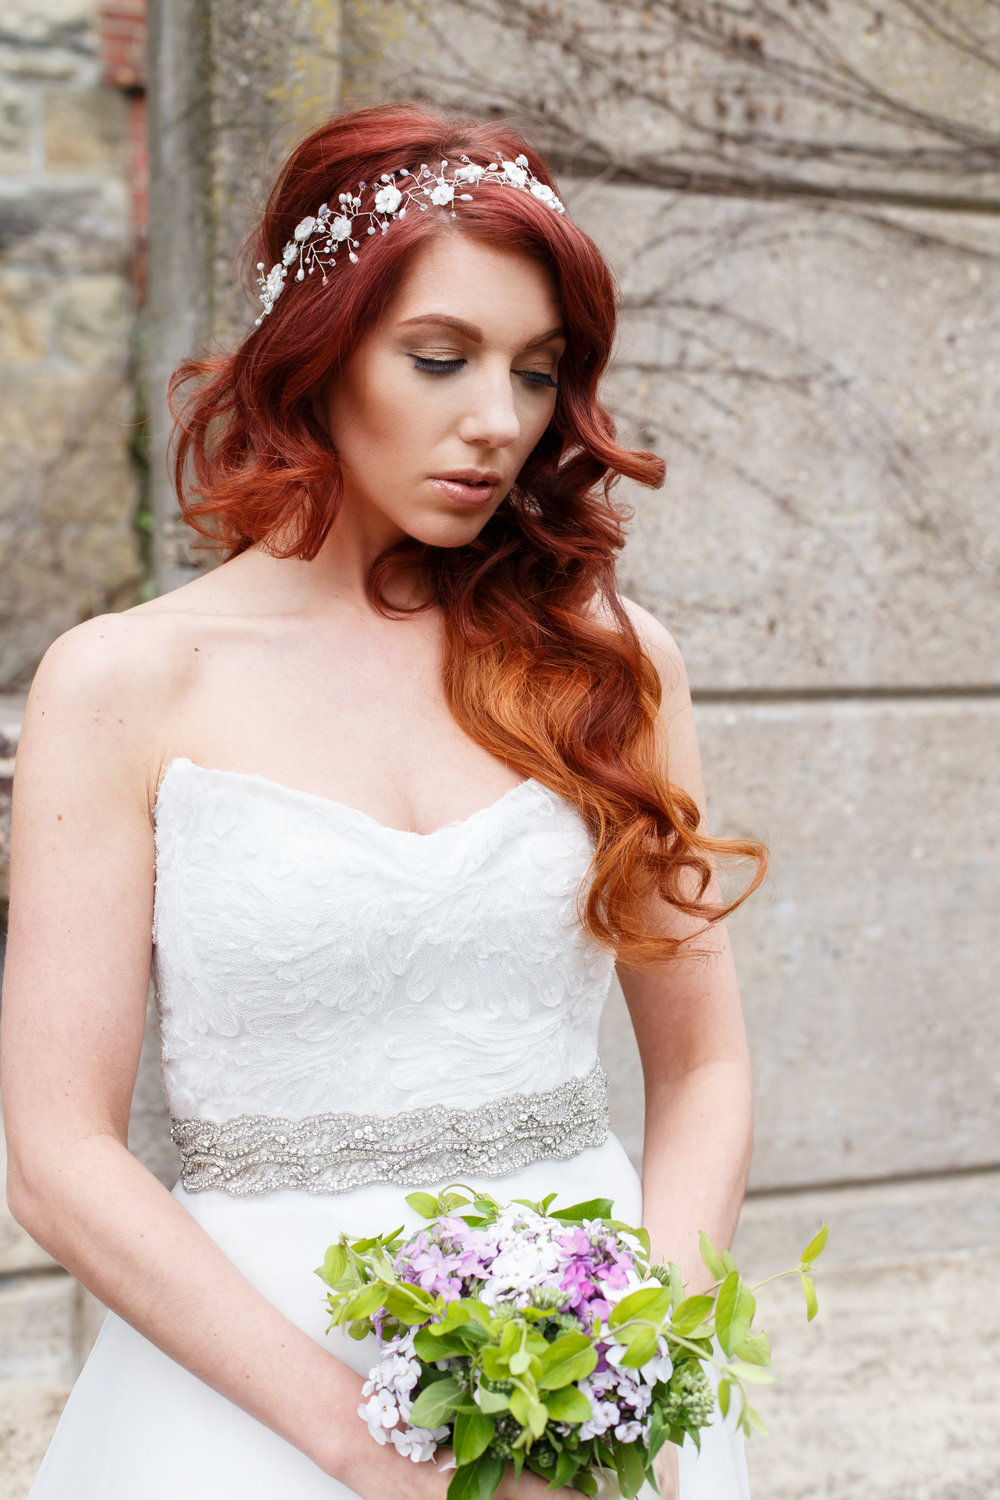 Dreamy Bridal Portrait Poses for Wedding Day Inspiration